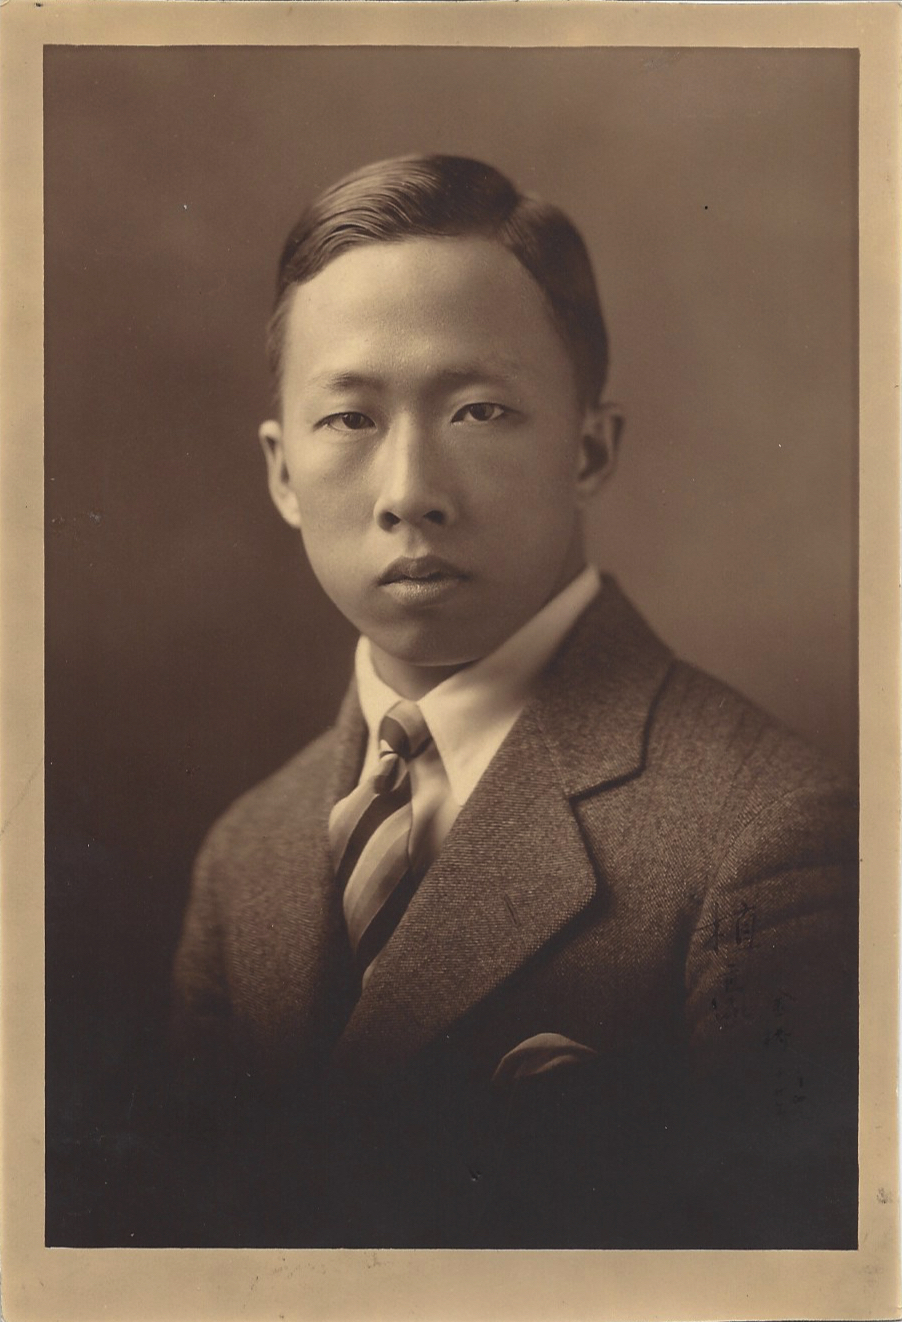 Chik-Ho Lam in his youth, nd. Courtesy S. Lam.